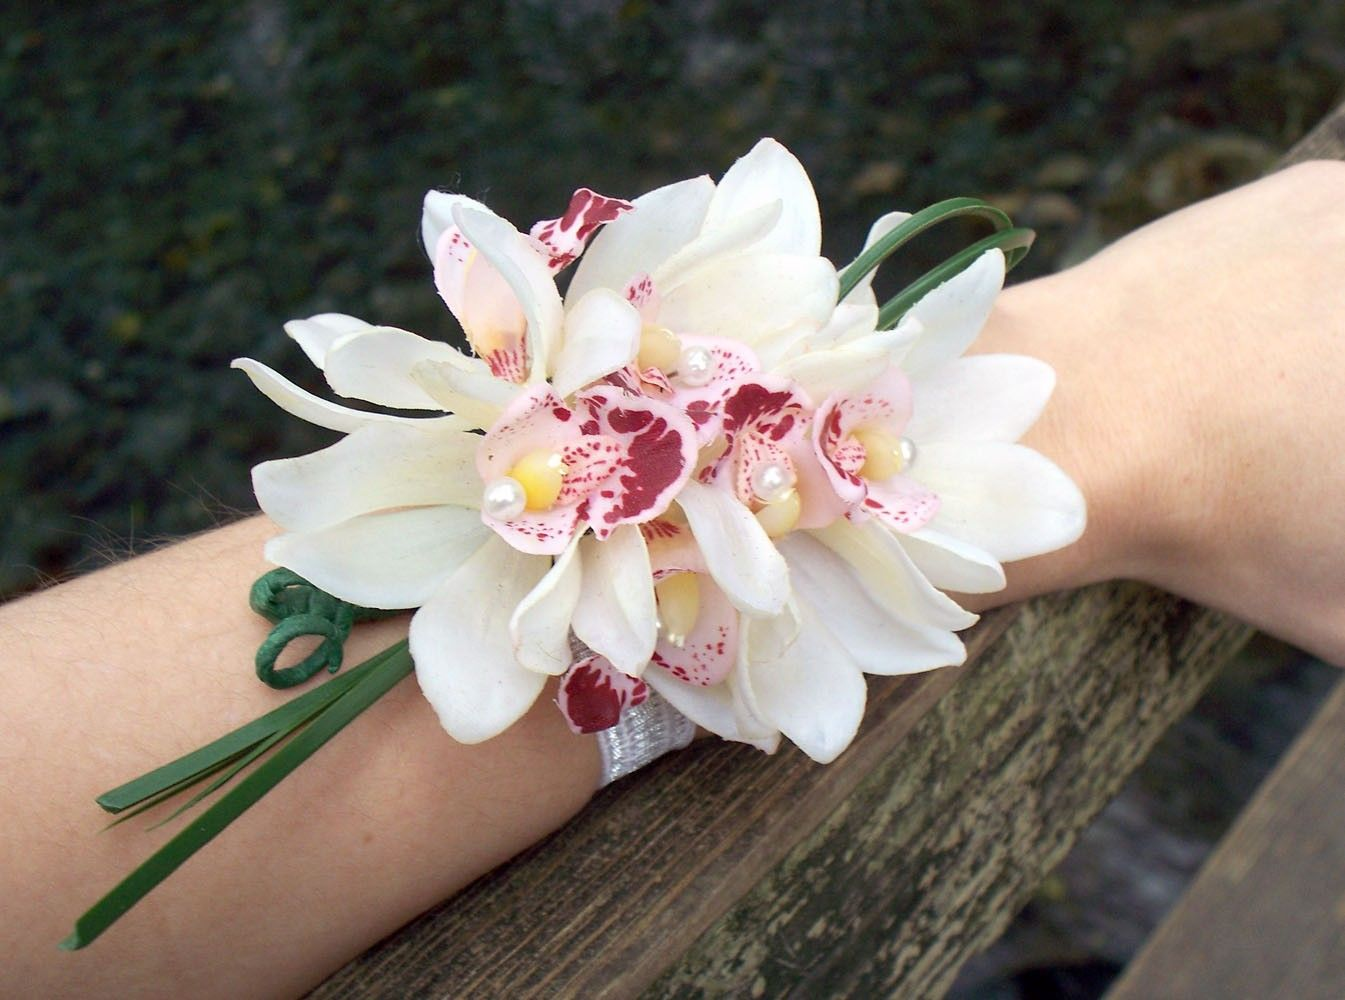 Orchid flowers have different uses they are used for making wedding orchid flowers have different uses they are used for making wedding bouquets floral arrangements and most interestingly for making corsages izmirmasajfo